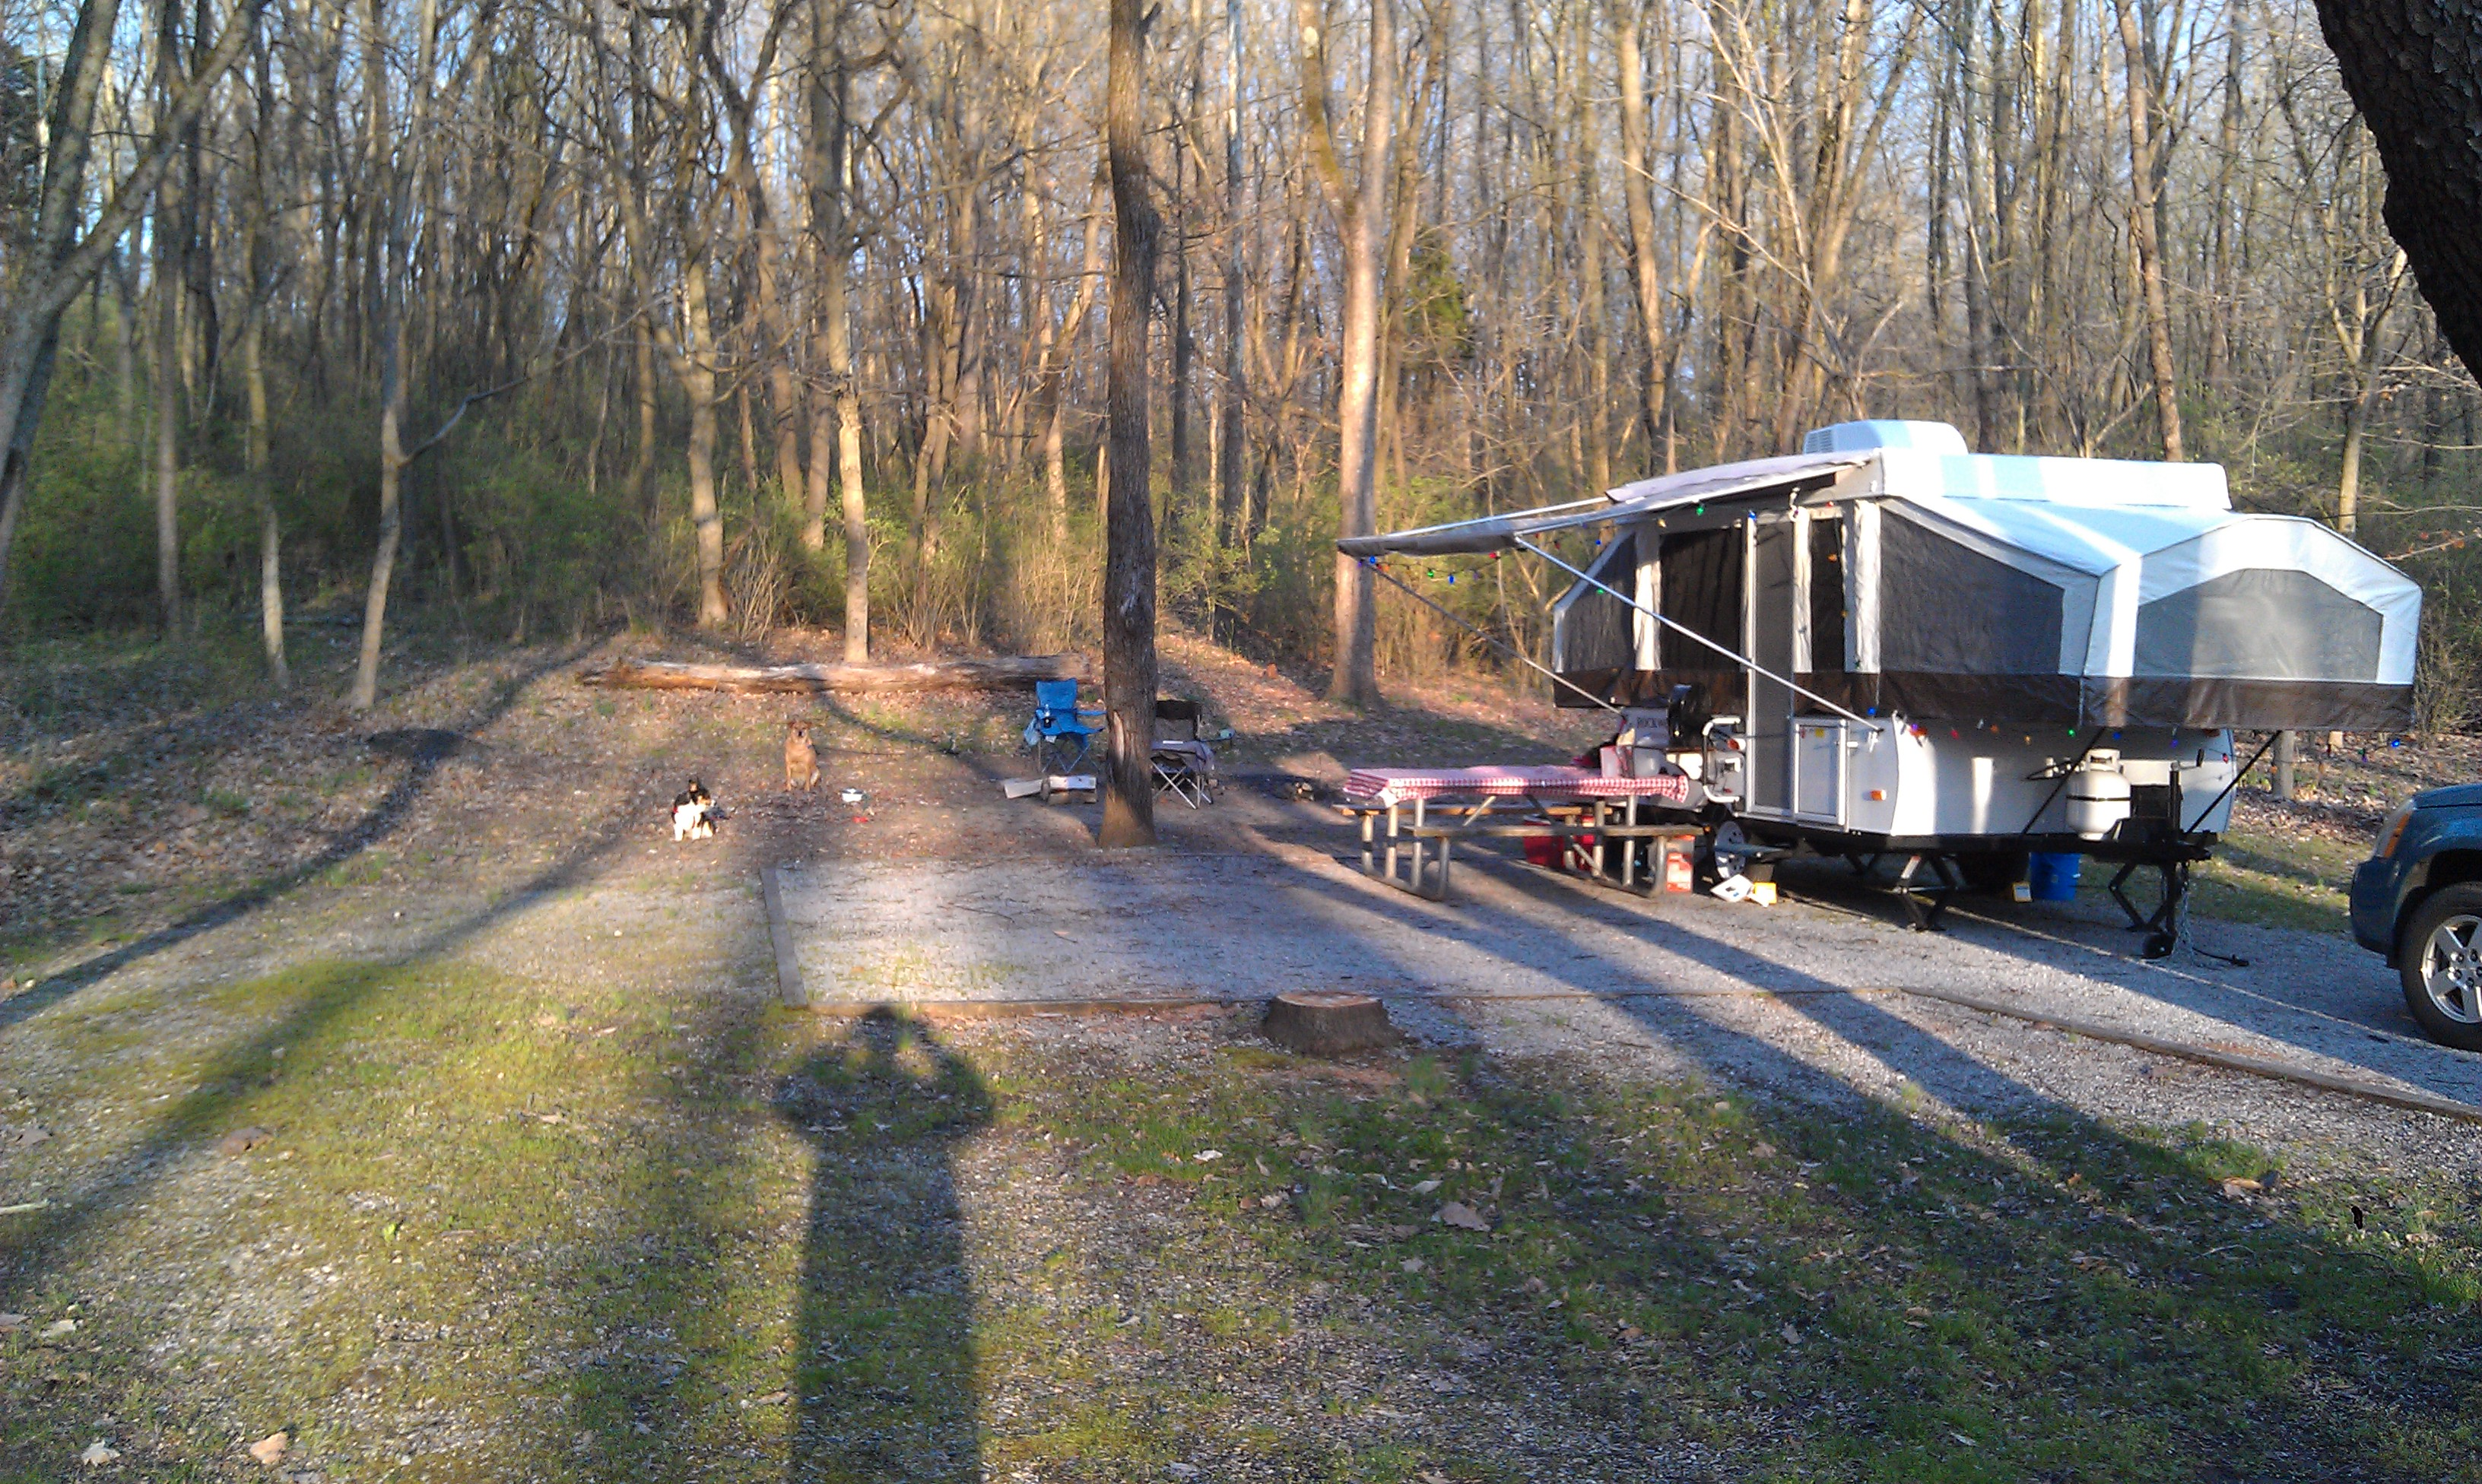 Miami Whitewater Forest Campground Harrison Oh